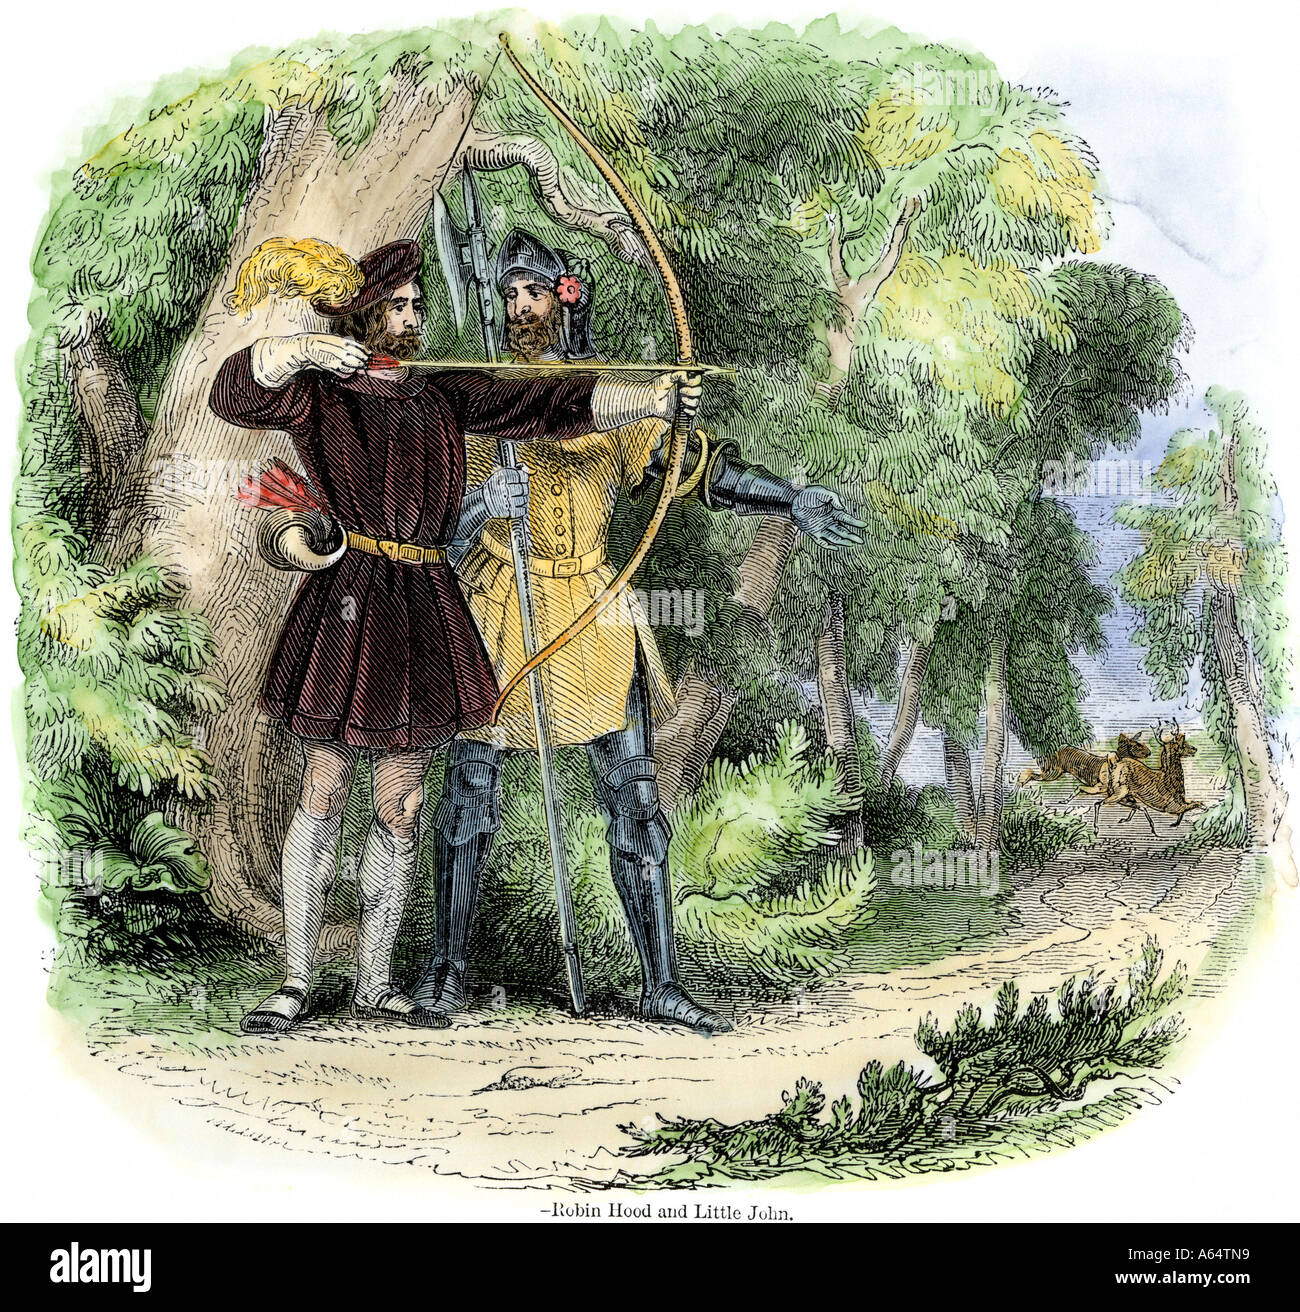 Robin Hood and Little John hunting deer in Sherwood Forest - Stock Image